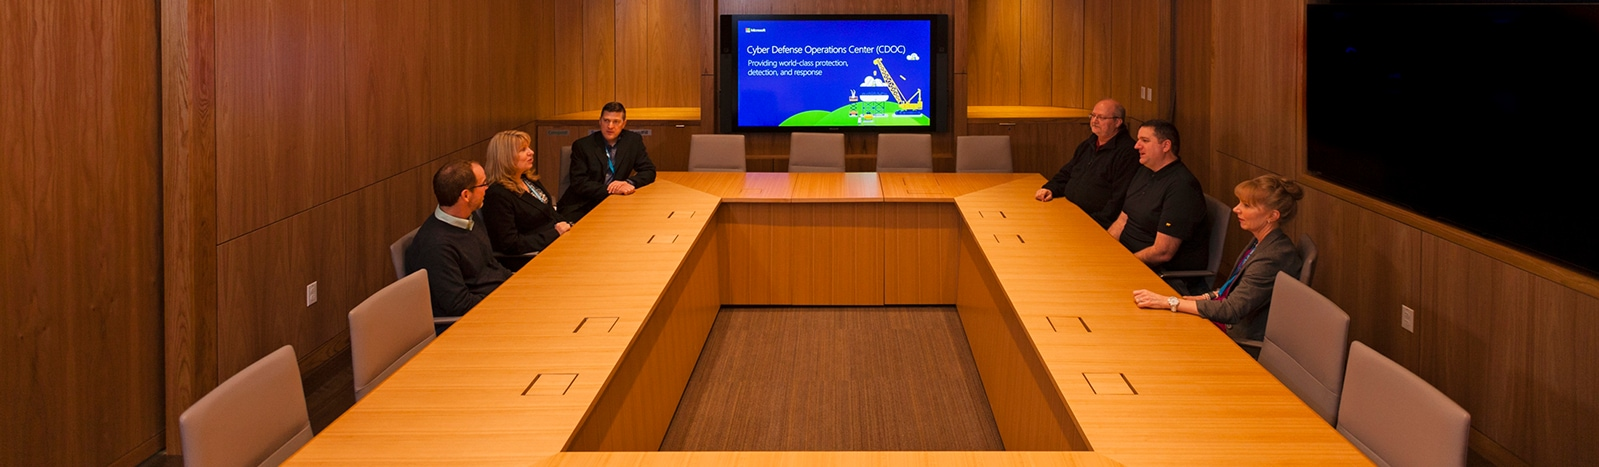 Six people seated in a large conference room talking while a large screen at the front of the room displays a presentation titled Cyberdefense Operations Center (CDOC)